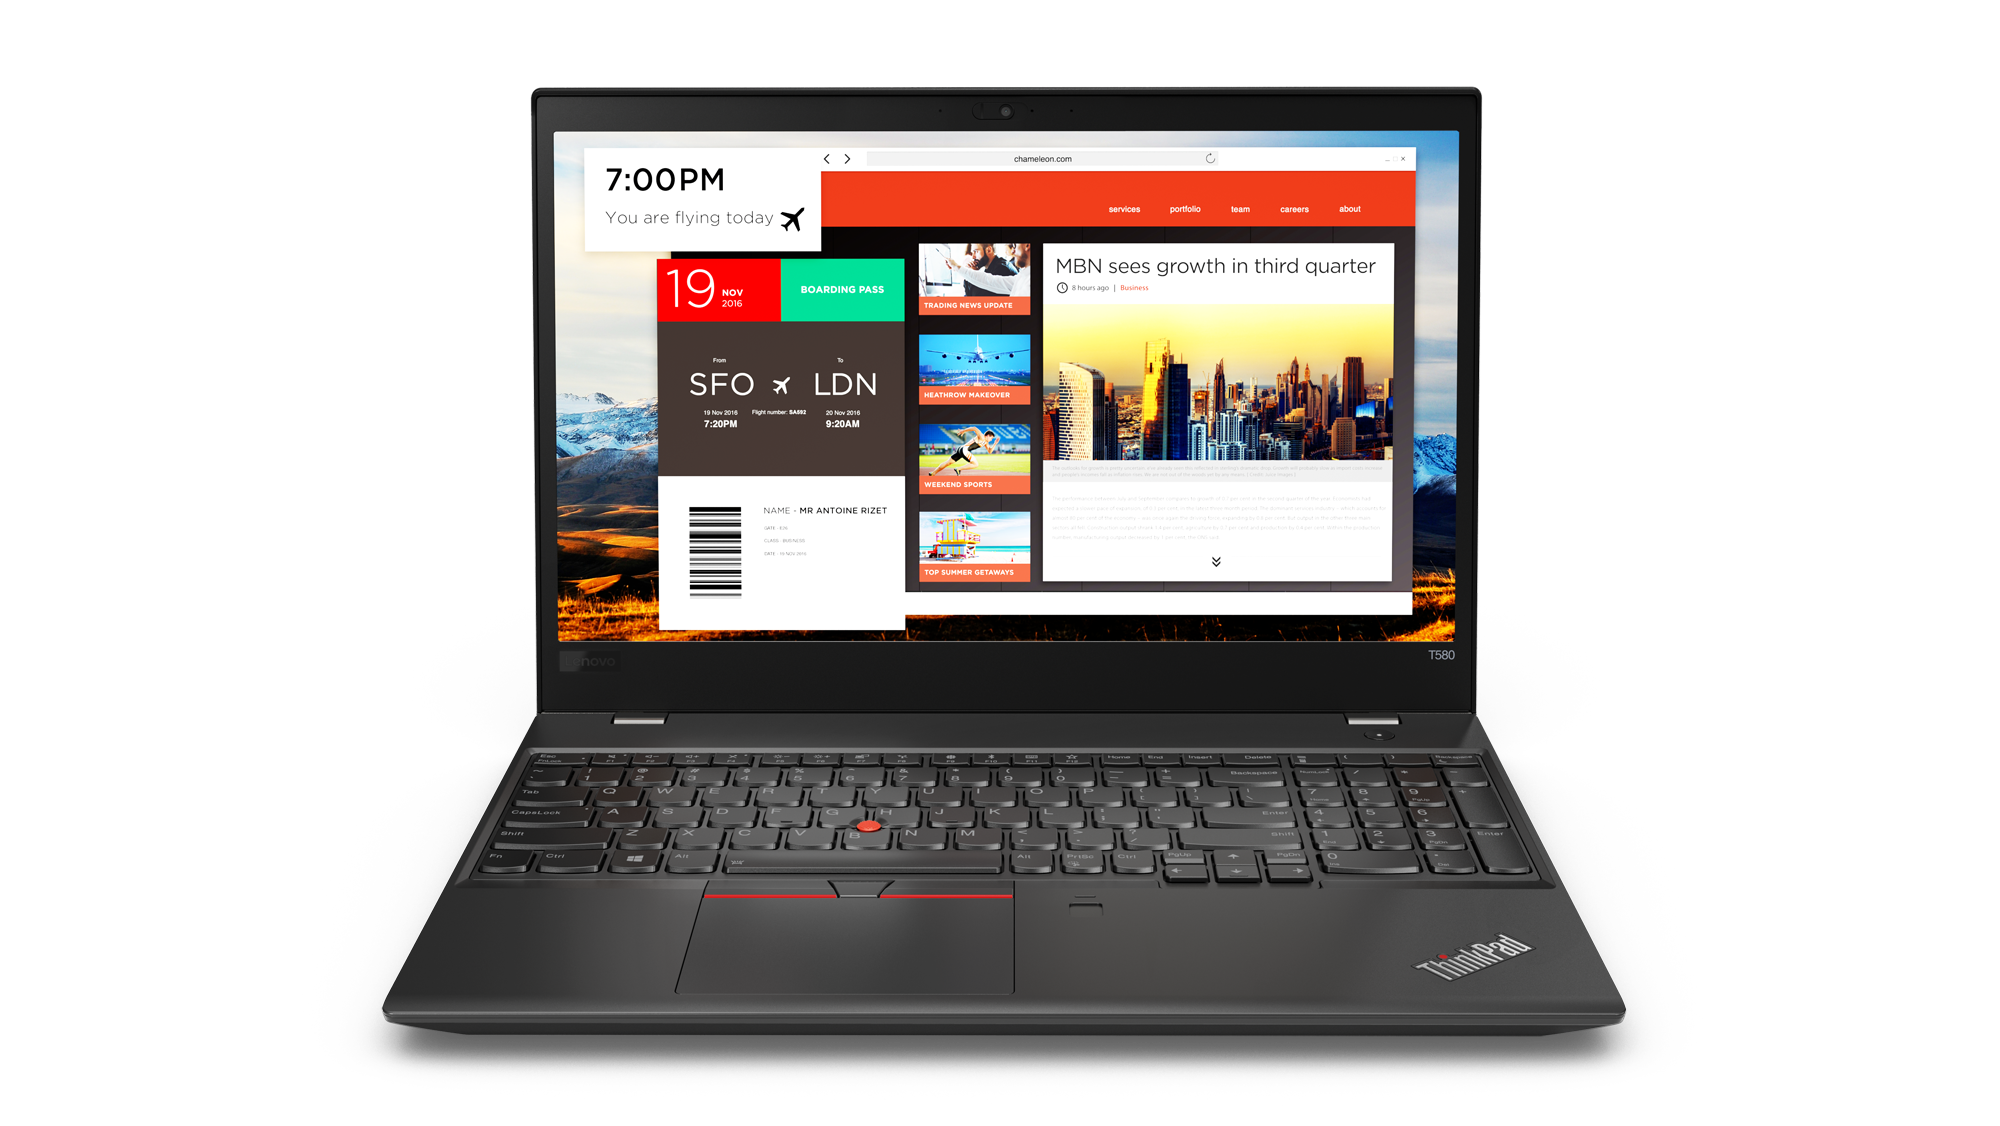 "Lenovo ThinkPad T580 i7-8550U/8GB/256GB SSD/UHD Graphics 620/15,6"" FHD IPS/4G/Win10PRO/black"